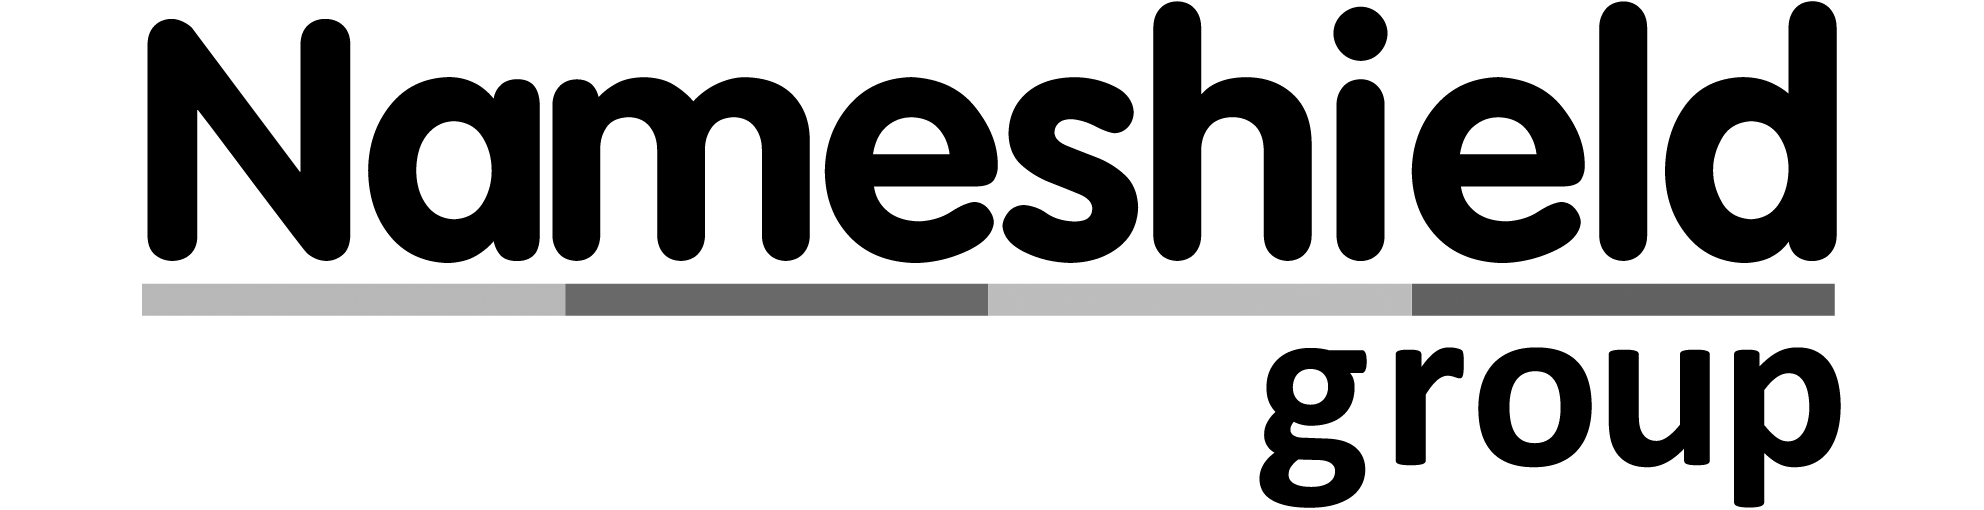 NameShield logo